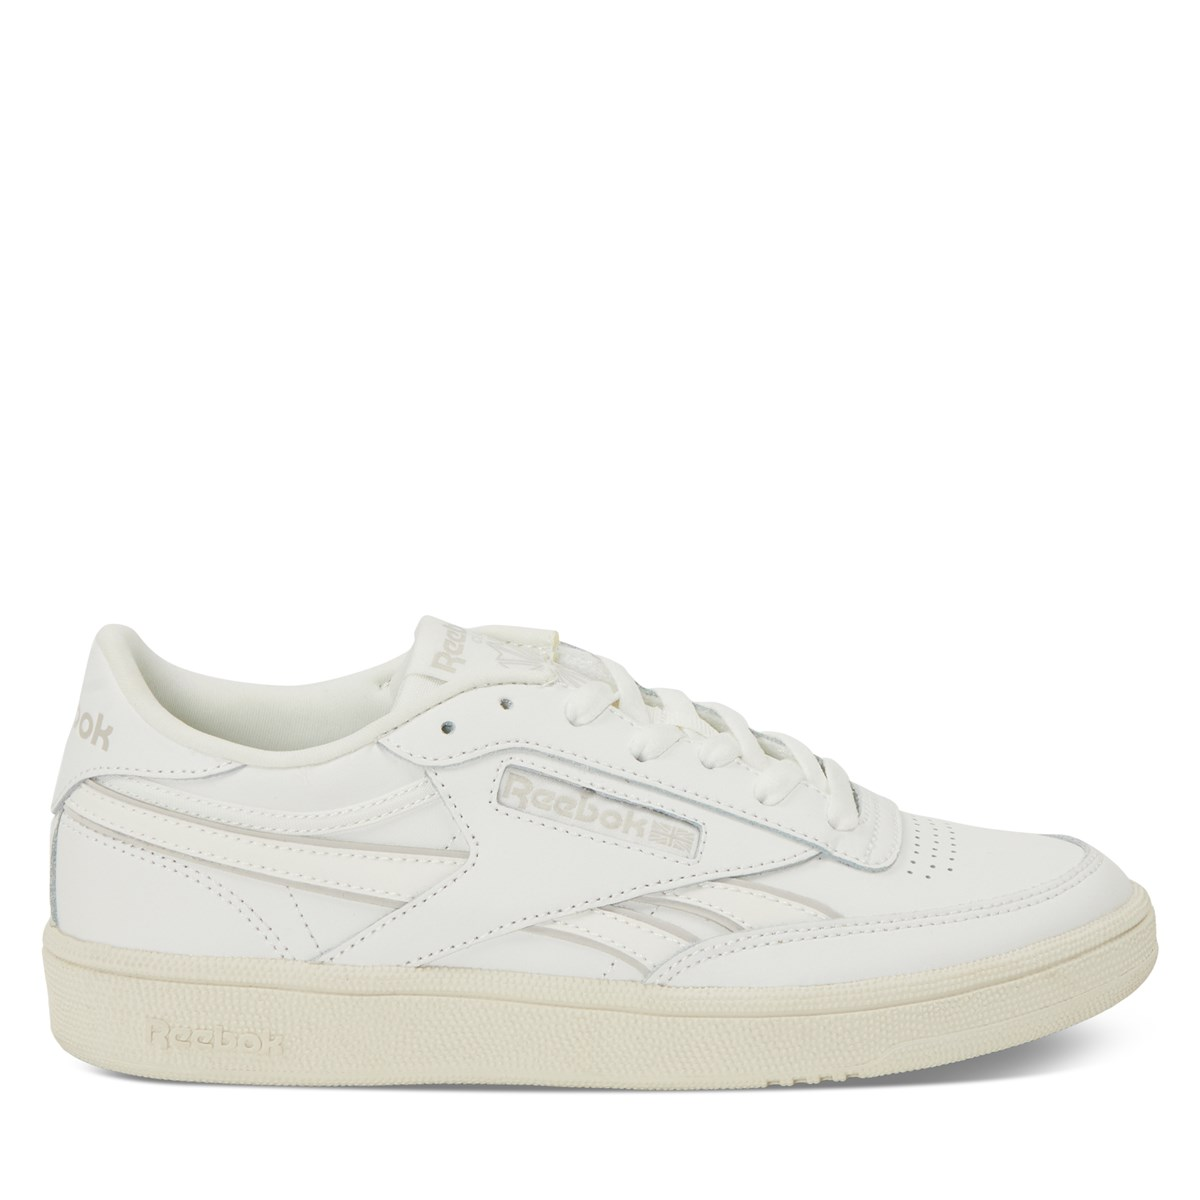 Women's Club C Sneakers in Chalk